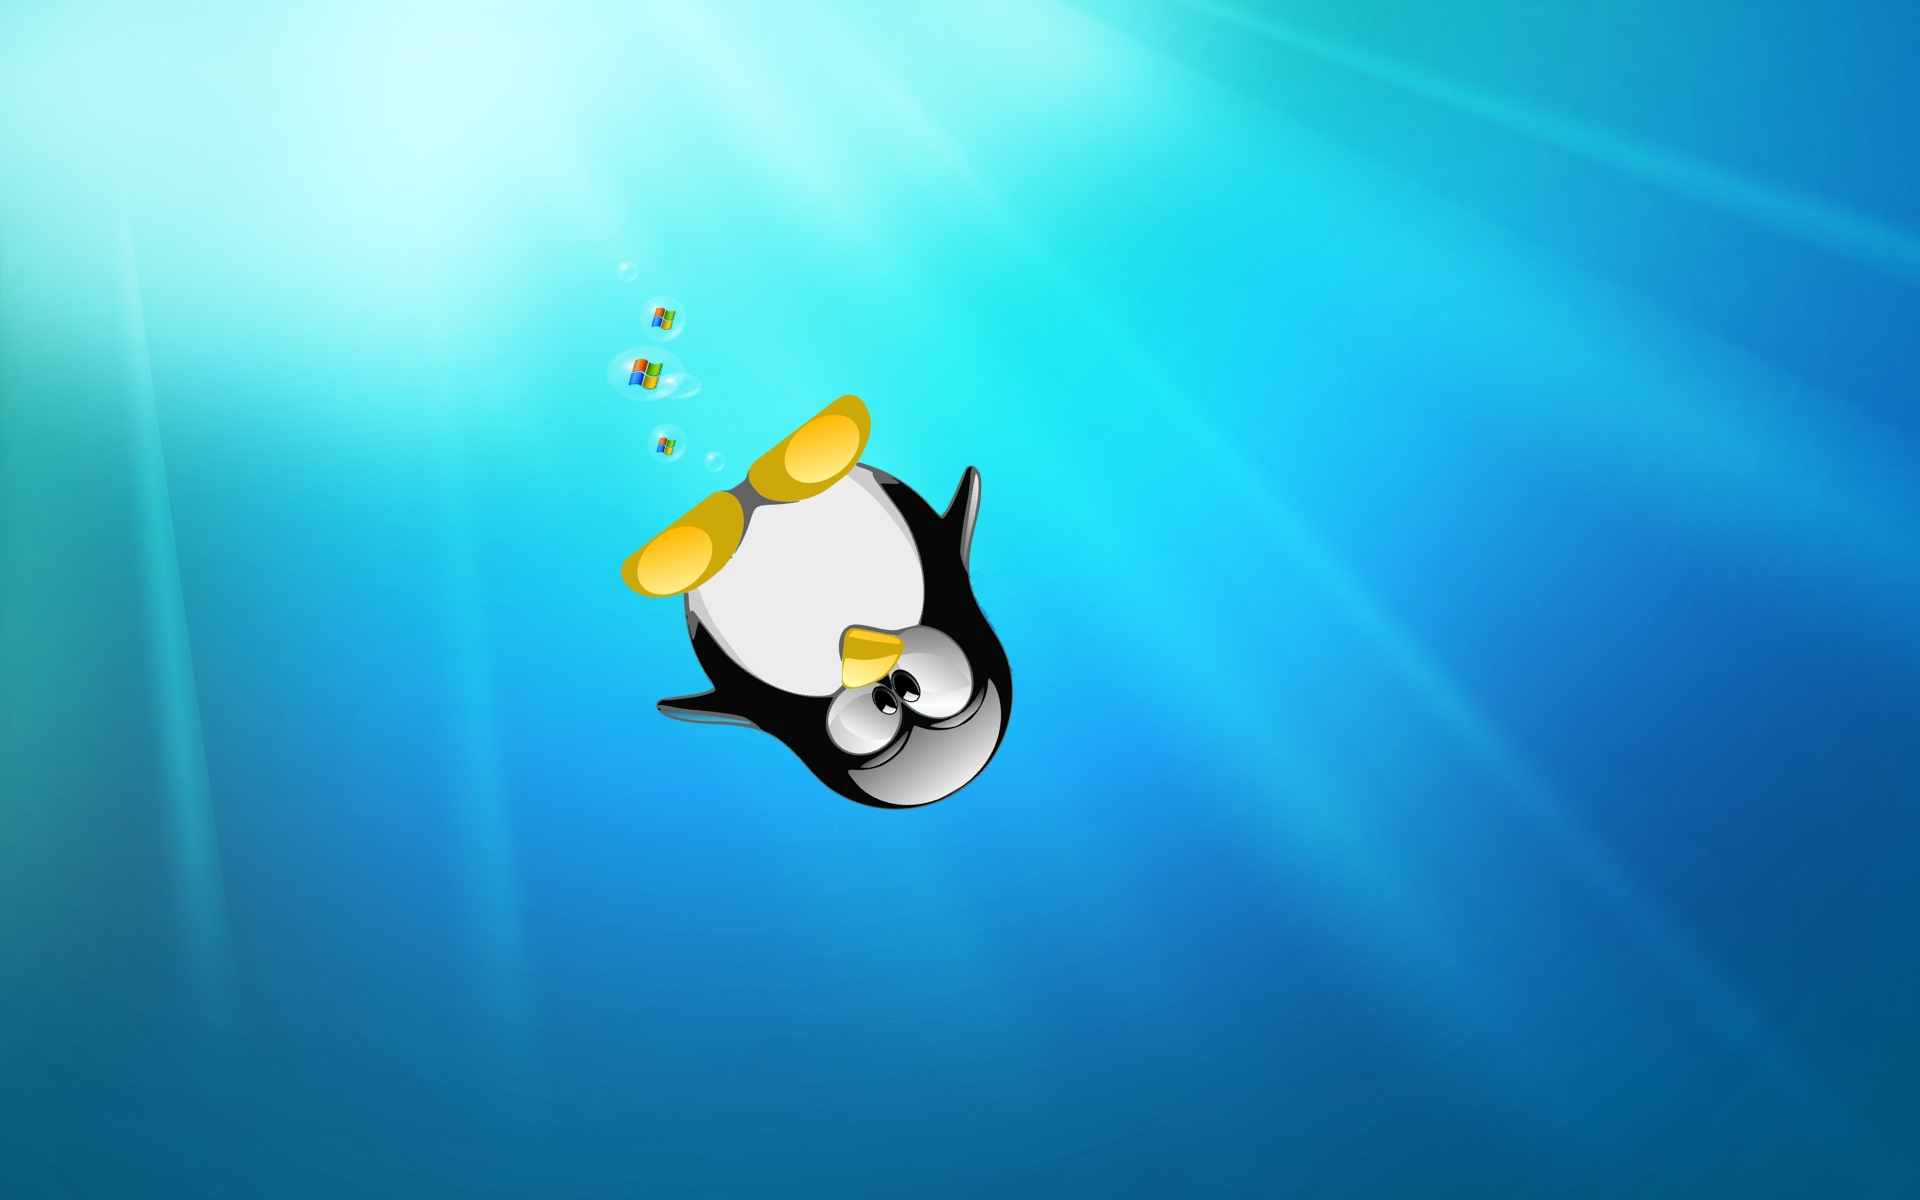 linux wallpapers penguin sea dreamwallpapers.co .uk  Wallpaper linux hd